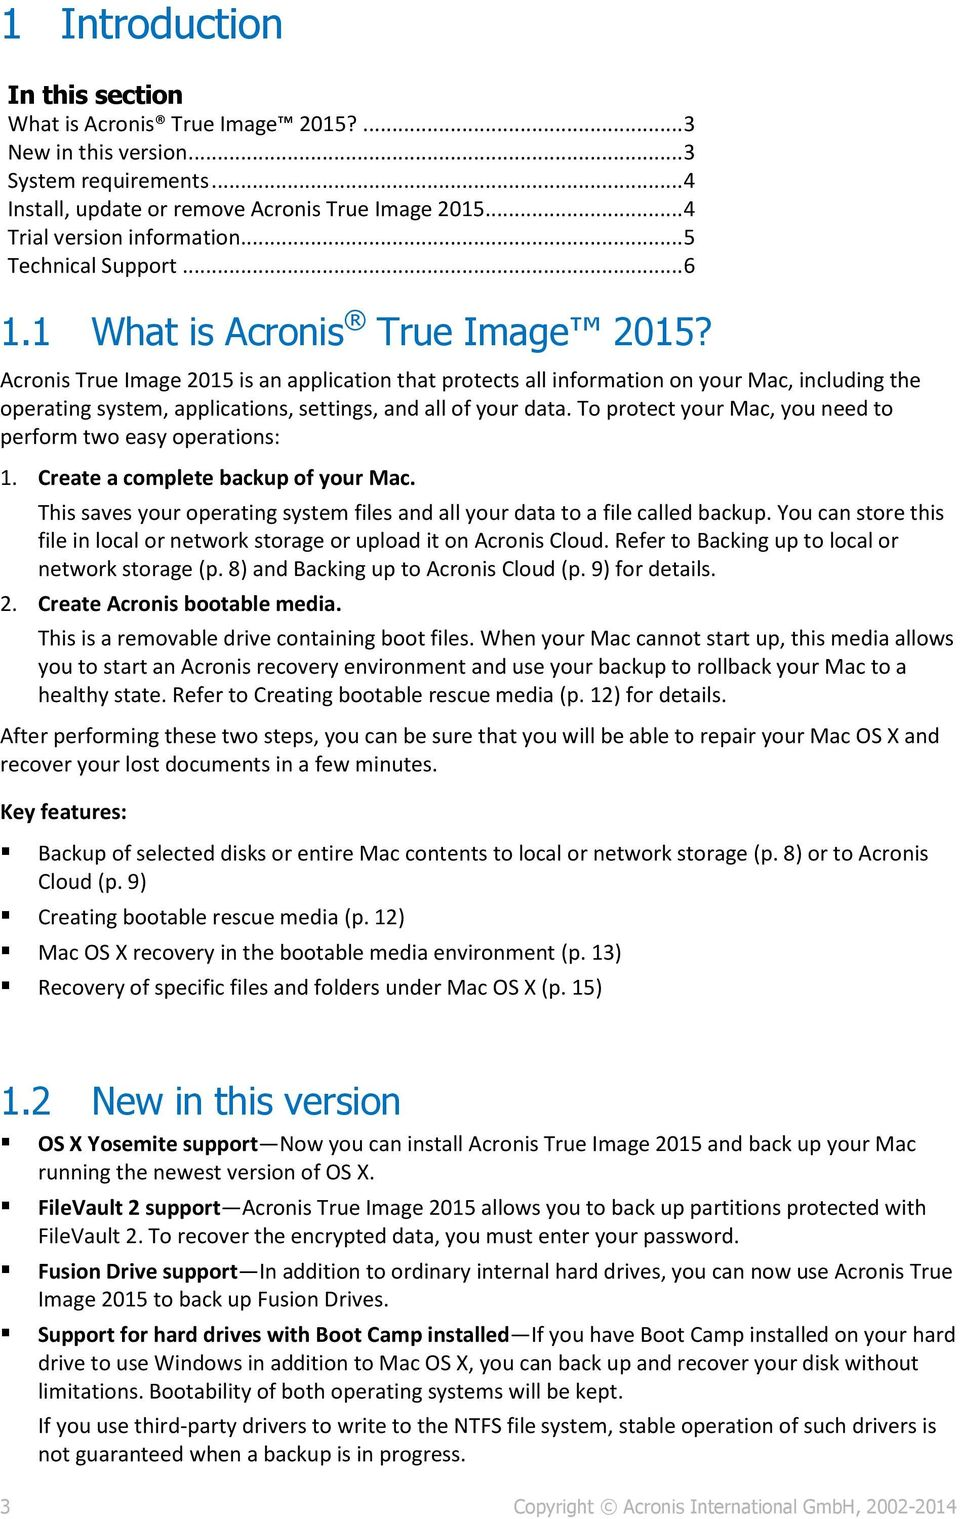 Acronis True Image 2015 is an application that protects all information on your Mac, including the operating system, applications, settings, and all of your data.